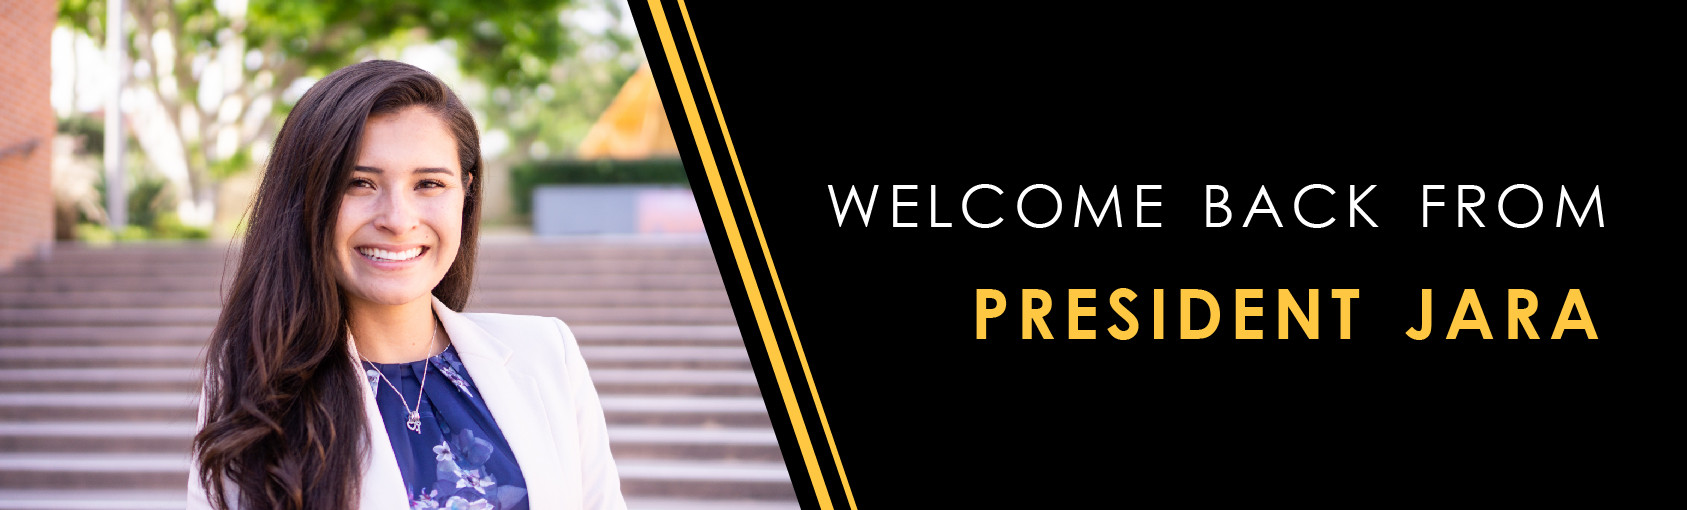 Welcome Back from President Jara Banner